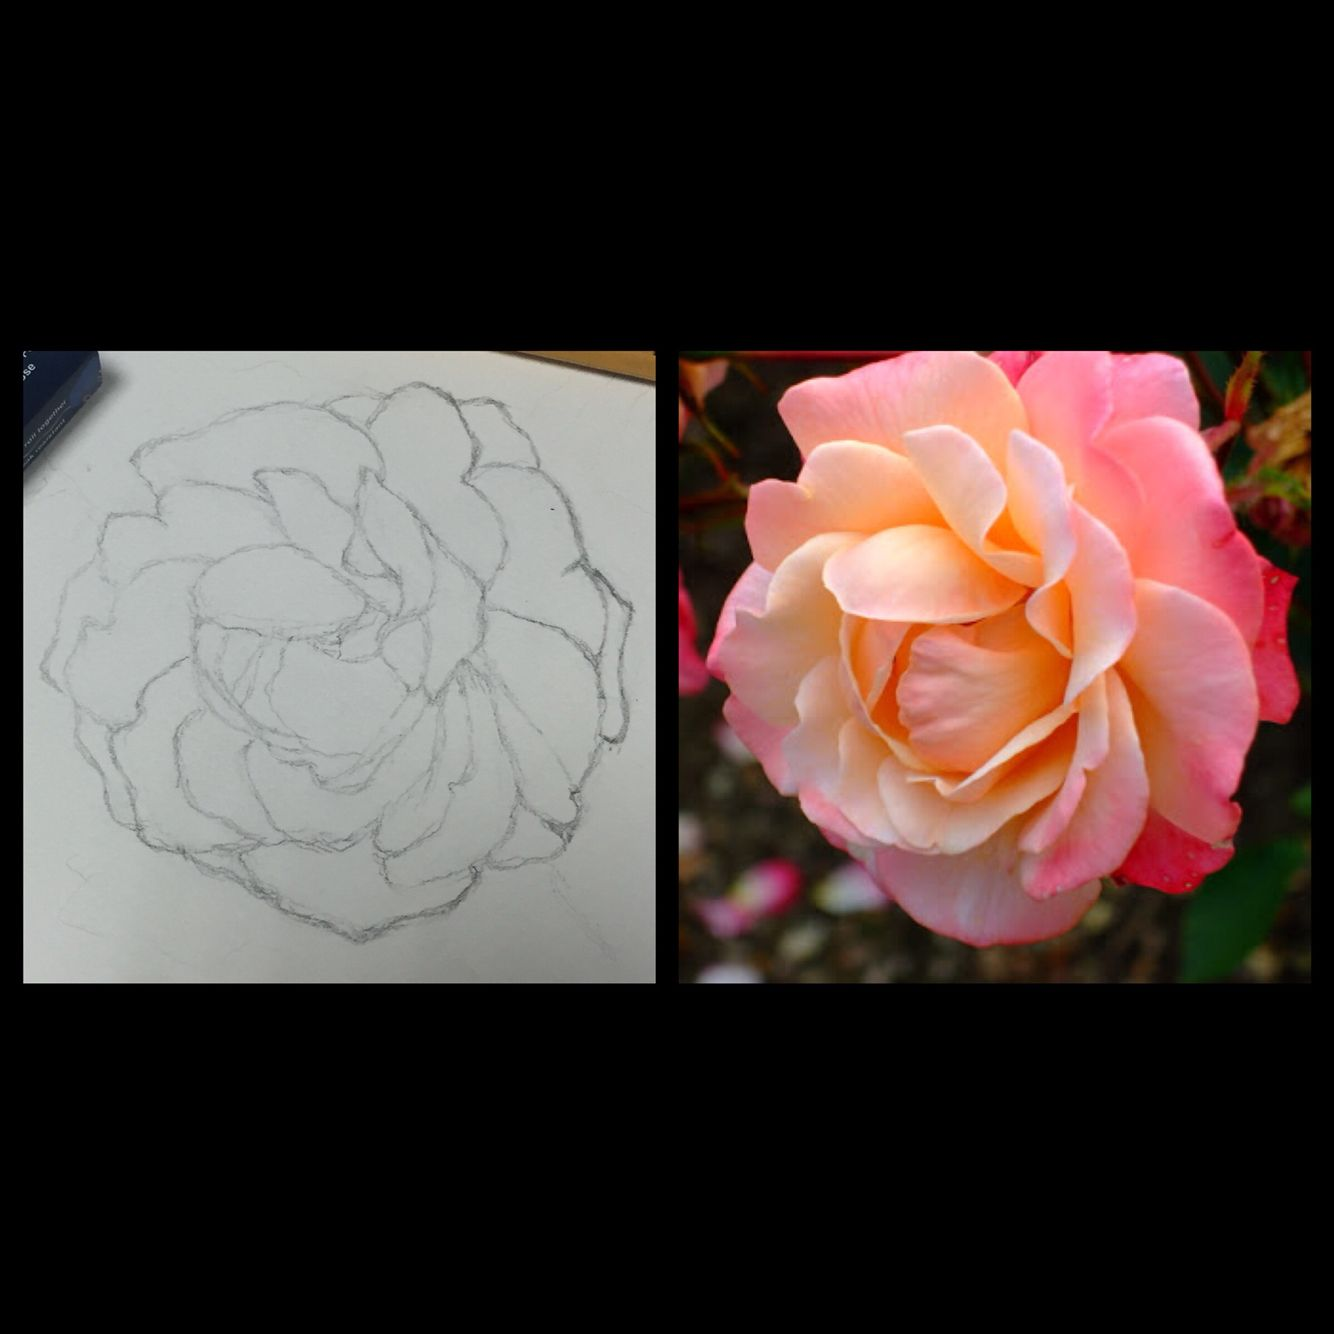 Drew an english rose that will be my #watercolor project this weekend